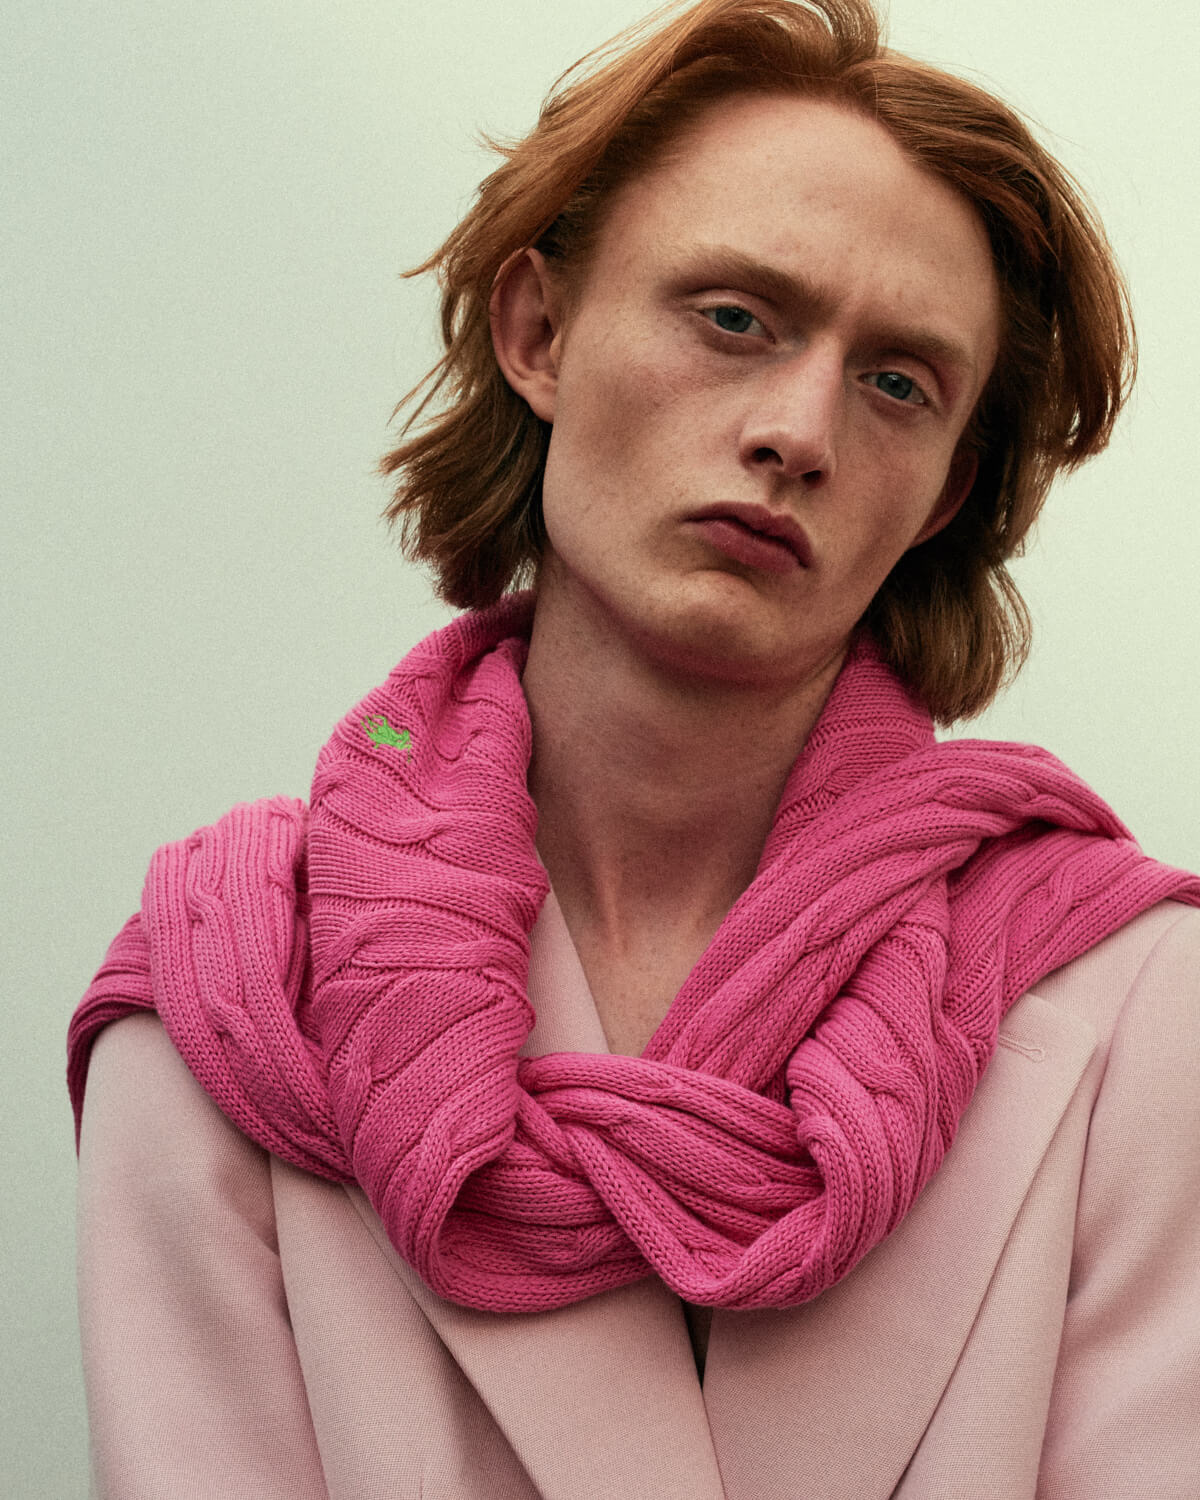 Lad, pink jacket, by lifestyle photographer Tim Cole